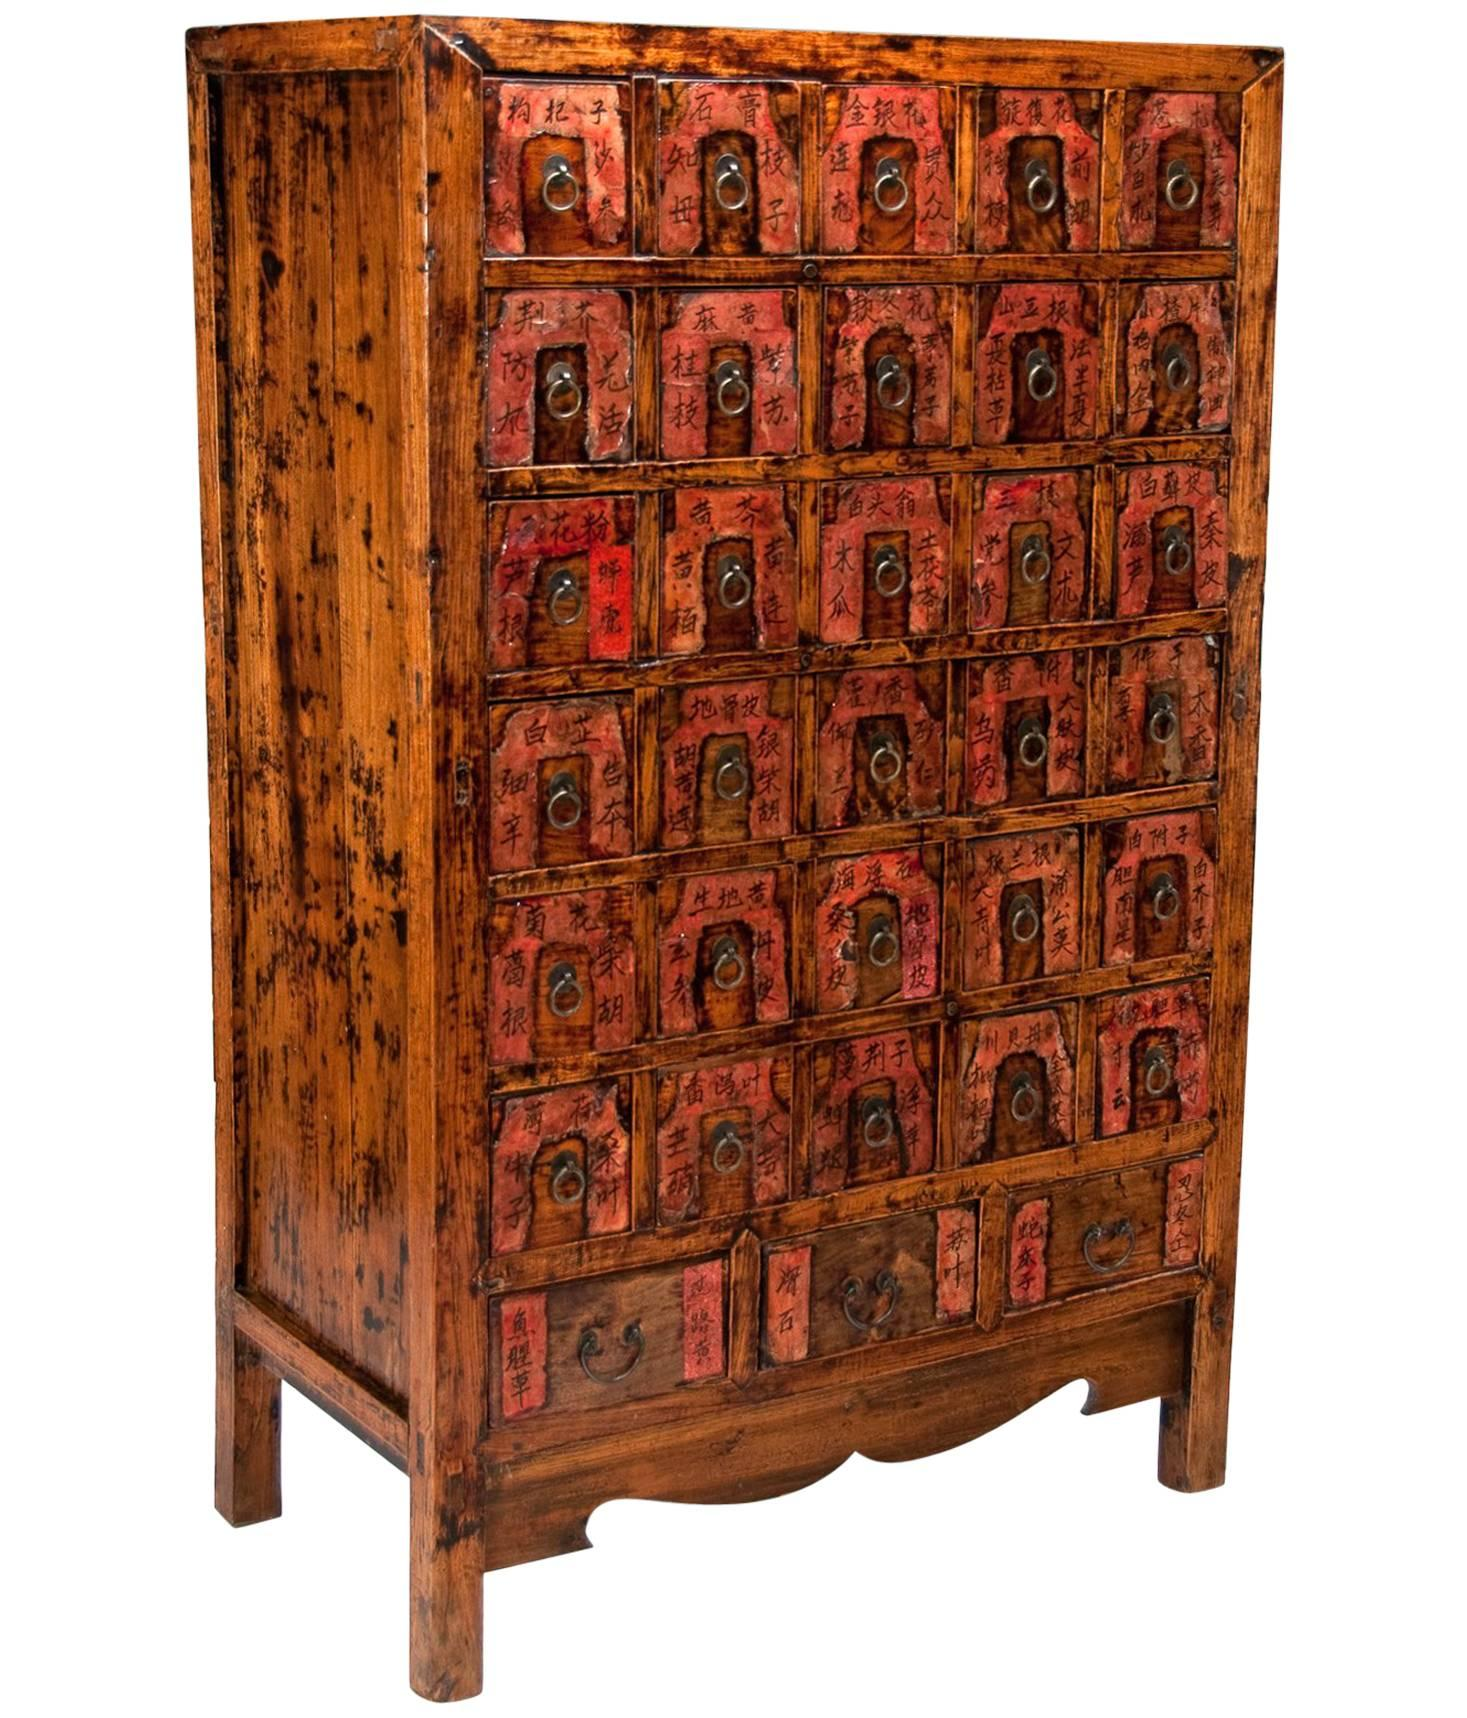 Asian Apothecary Cabinets - 28 For Sale at 1stdibs